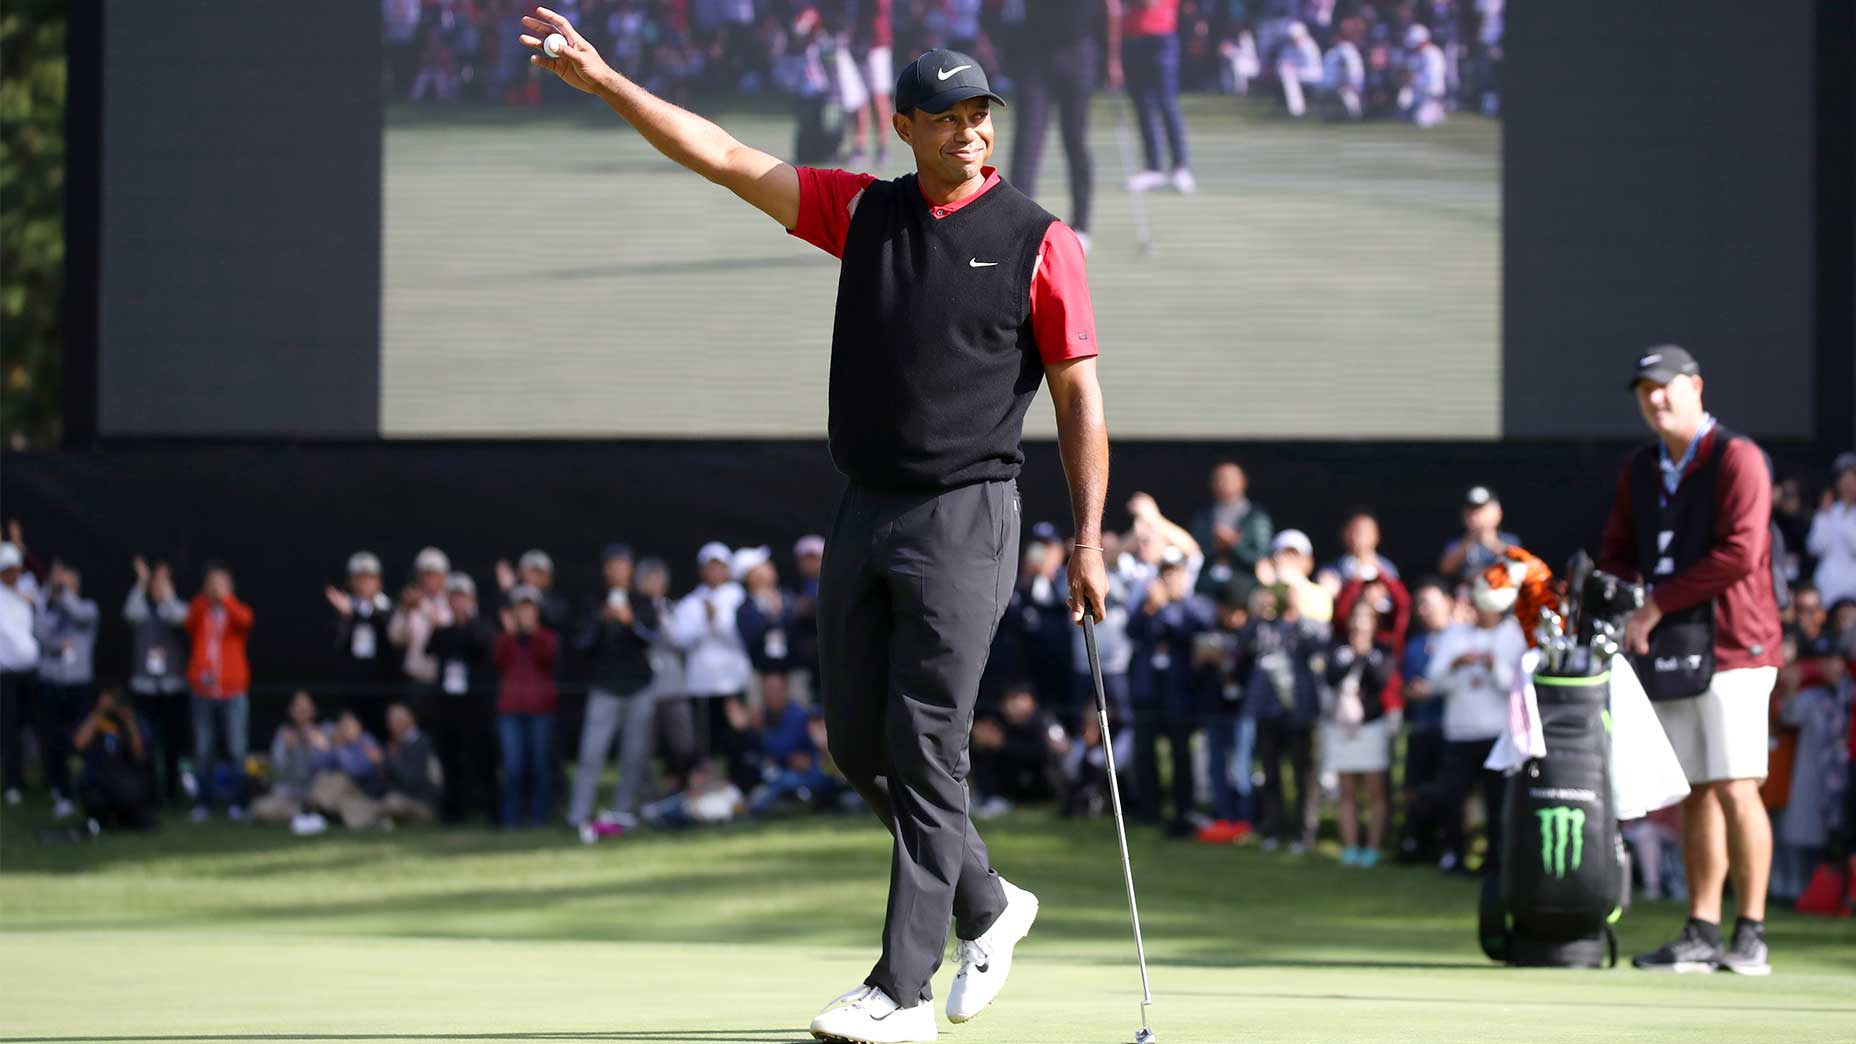 Tiger Woods wins the Zozo Championship.